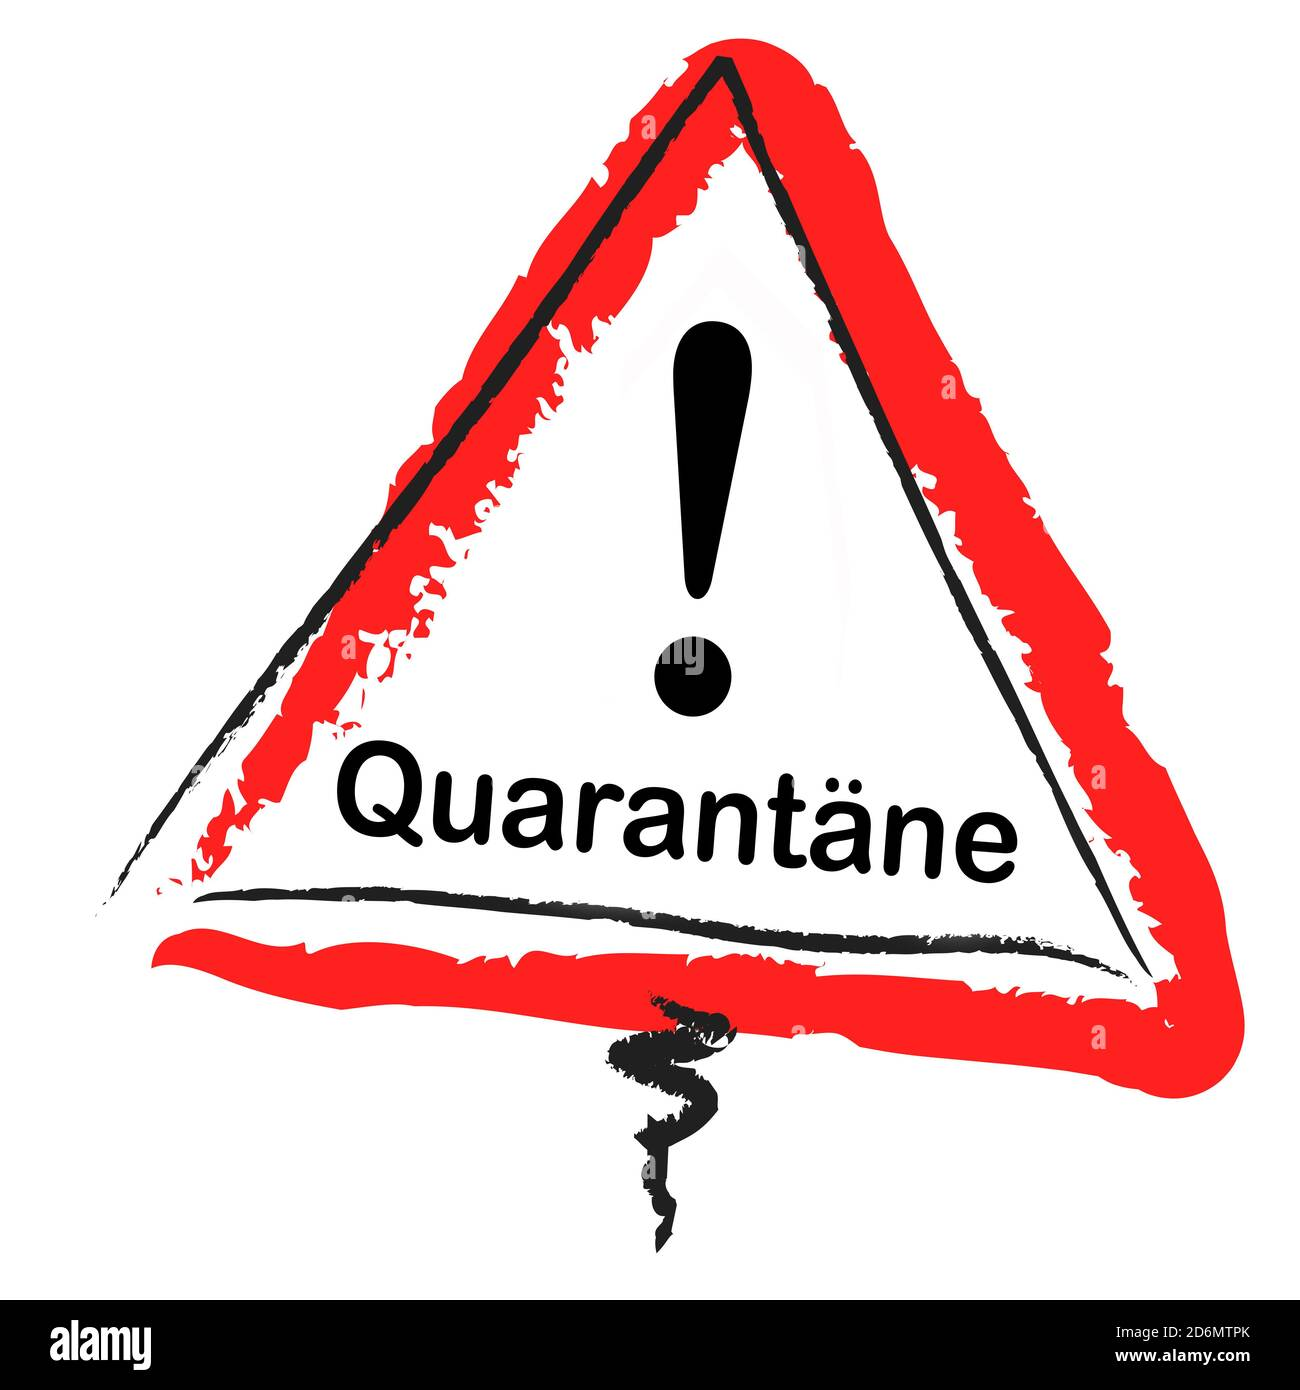 Quarantäne warning plate isolated against white background Stock Photo